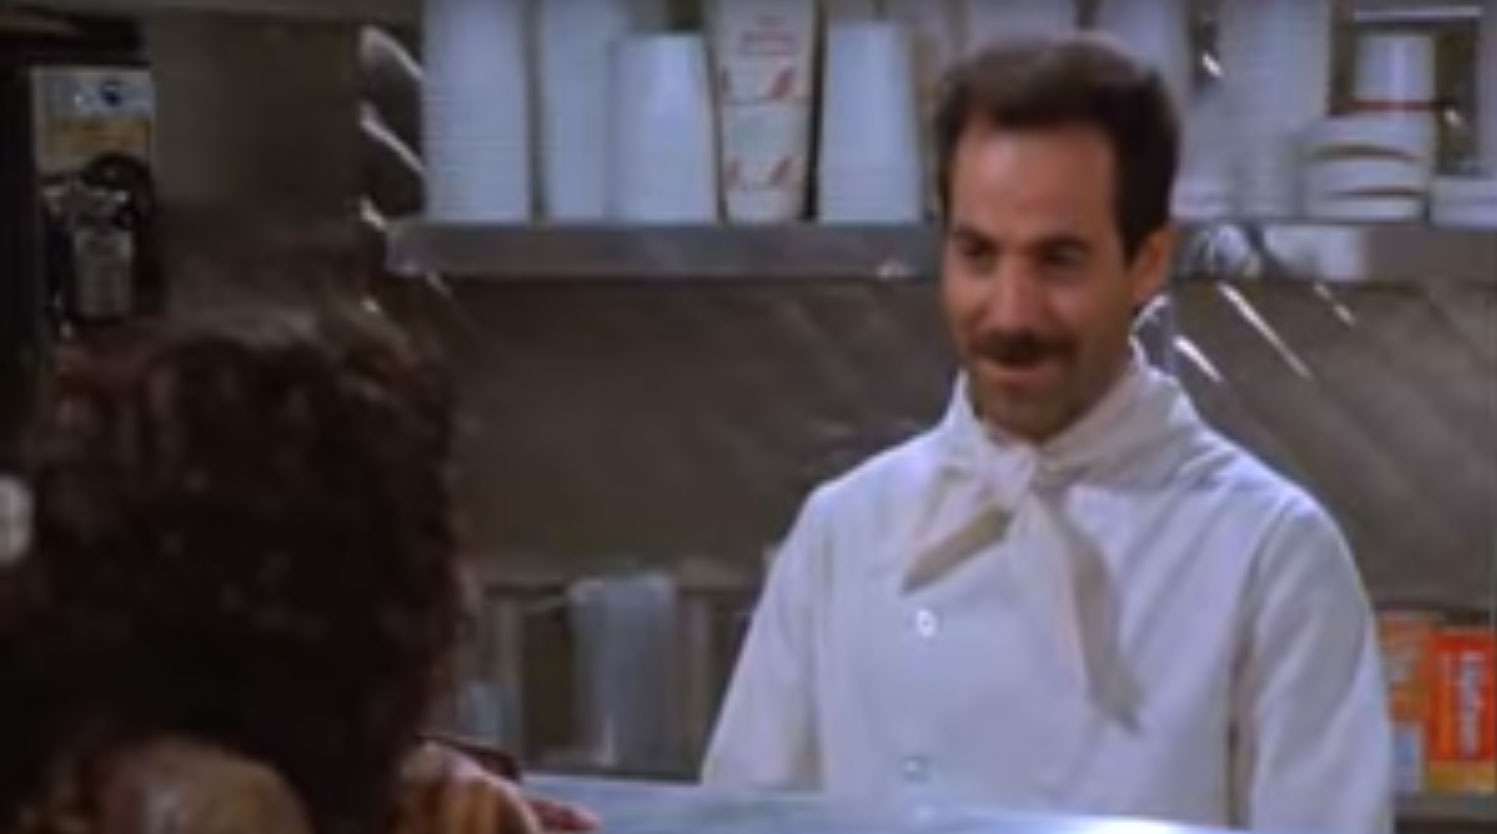 Soupman, of Seinfeld's 'Soup Nazi,' Files for Bankruptcy